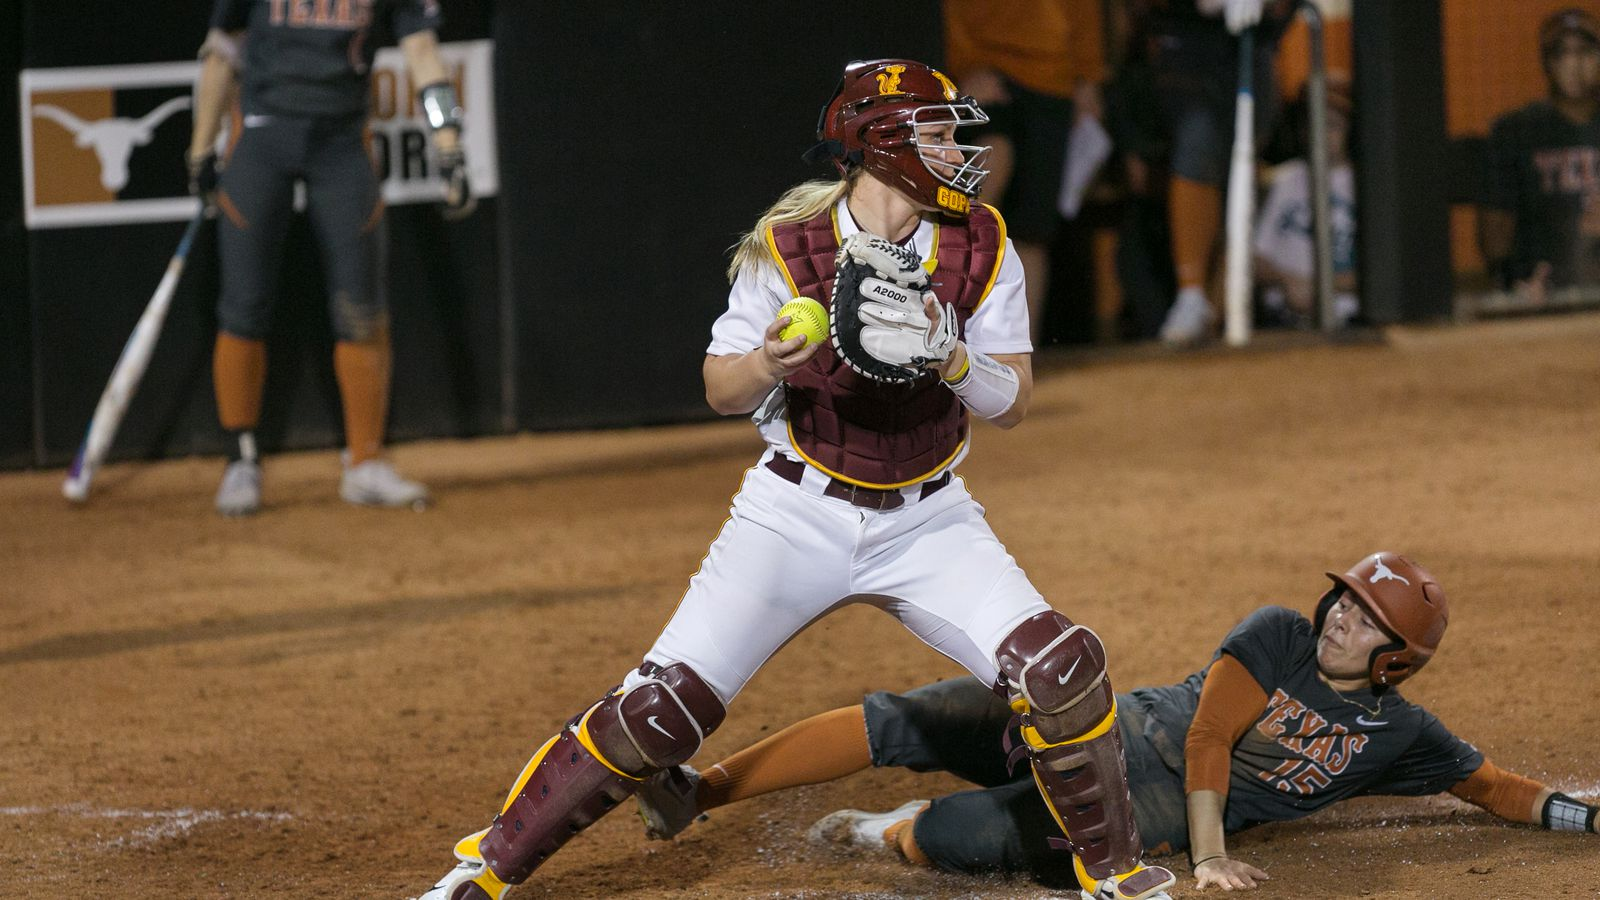 Gophers_catcher_kendyl_lindaman_outs_a_player_in_february_2017_at_the_unversity_of_texas_in.0